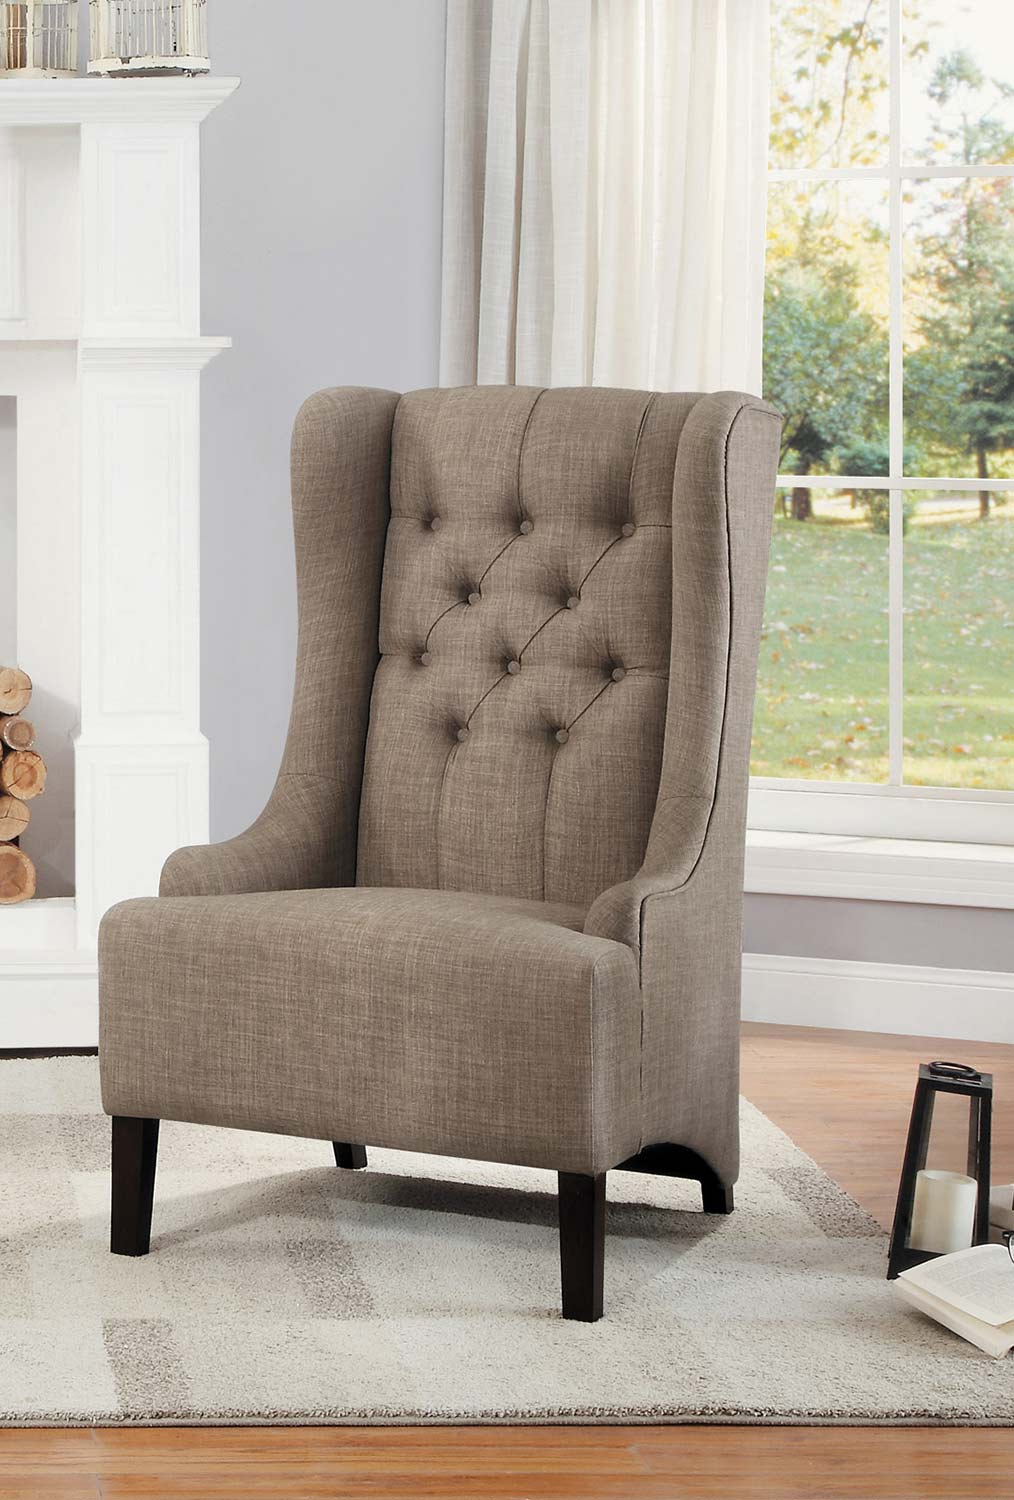 Homelegance Devon Accent Chair - Brown